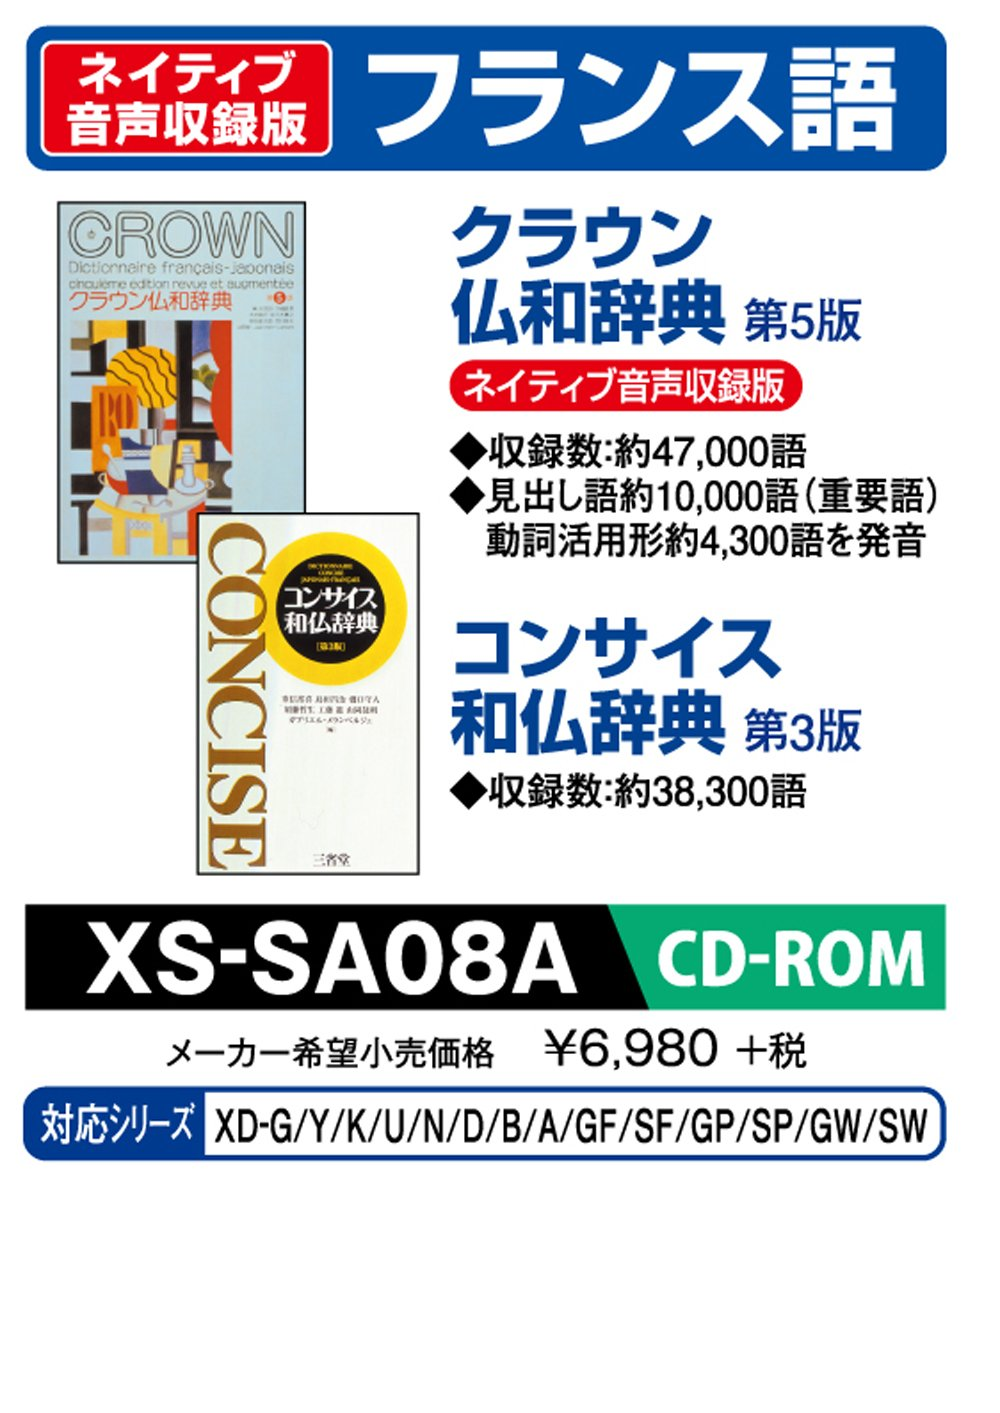 CASIO essence word data plus additional content-only CD-ROM XS-SA08A (native voice recording Crown French-Japanese / Japanese Concise Dictionary Buddha) (japan import)